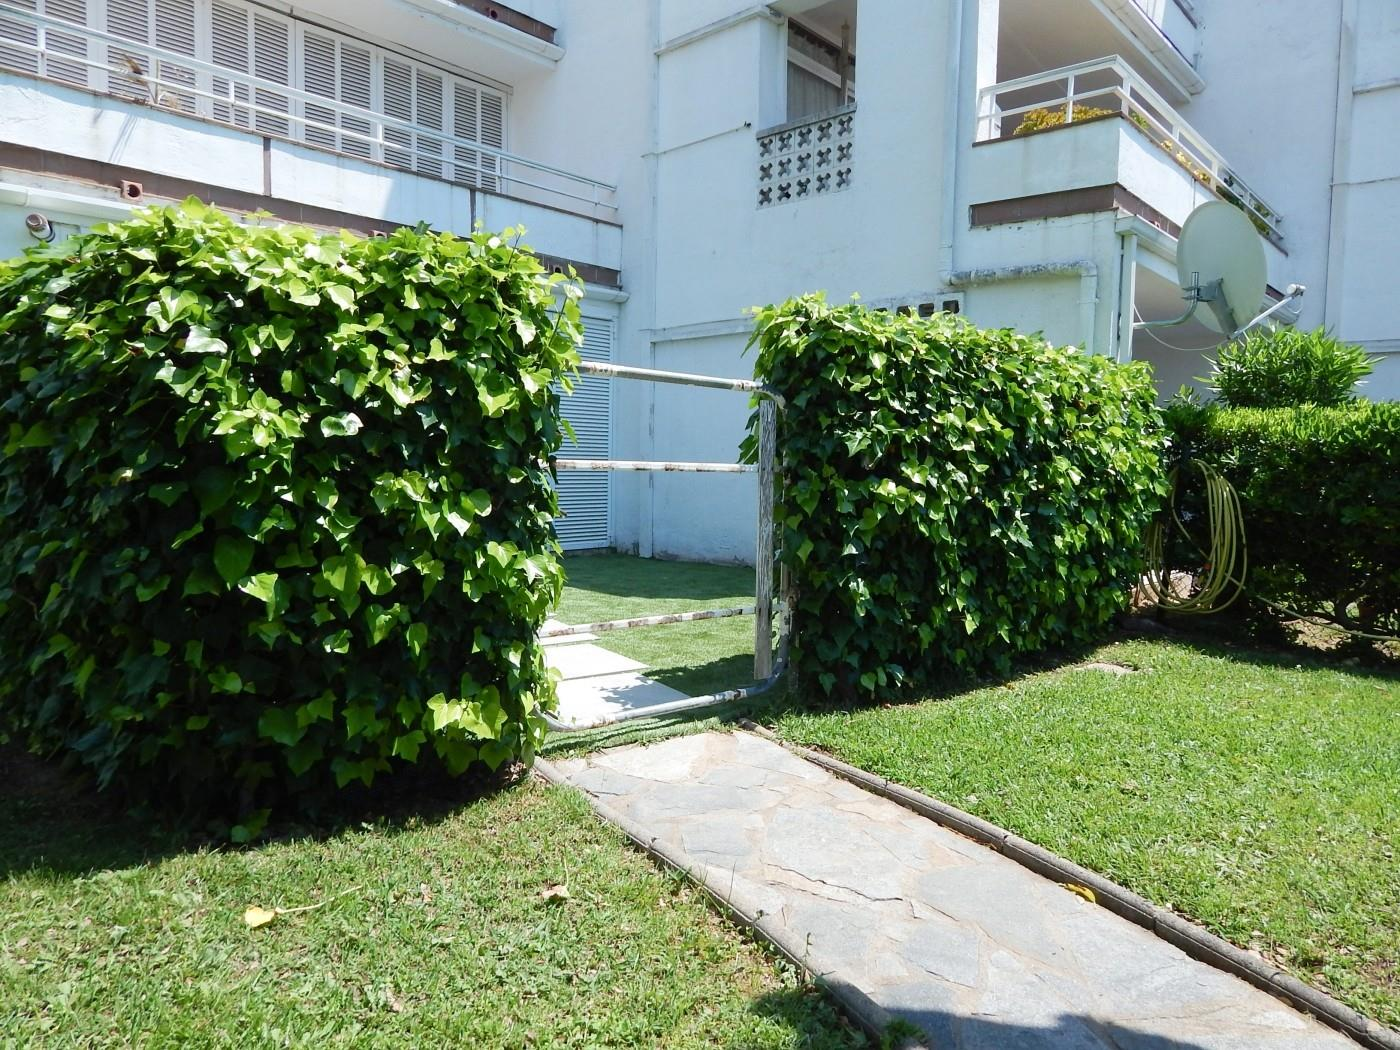 Rent Apartment with Swimming pool in Platja d'Aro - Gardenies Planta Baixa Piscina i Wifi - 38